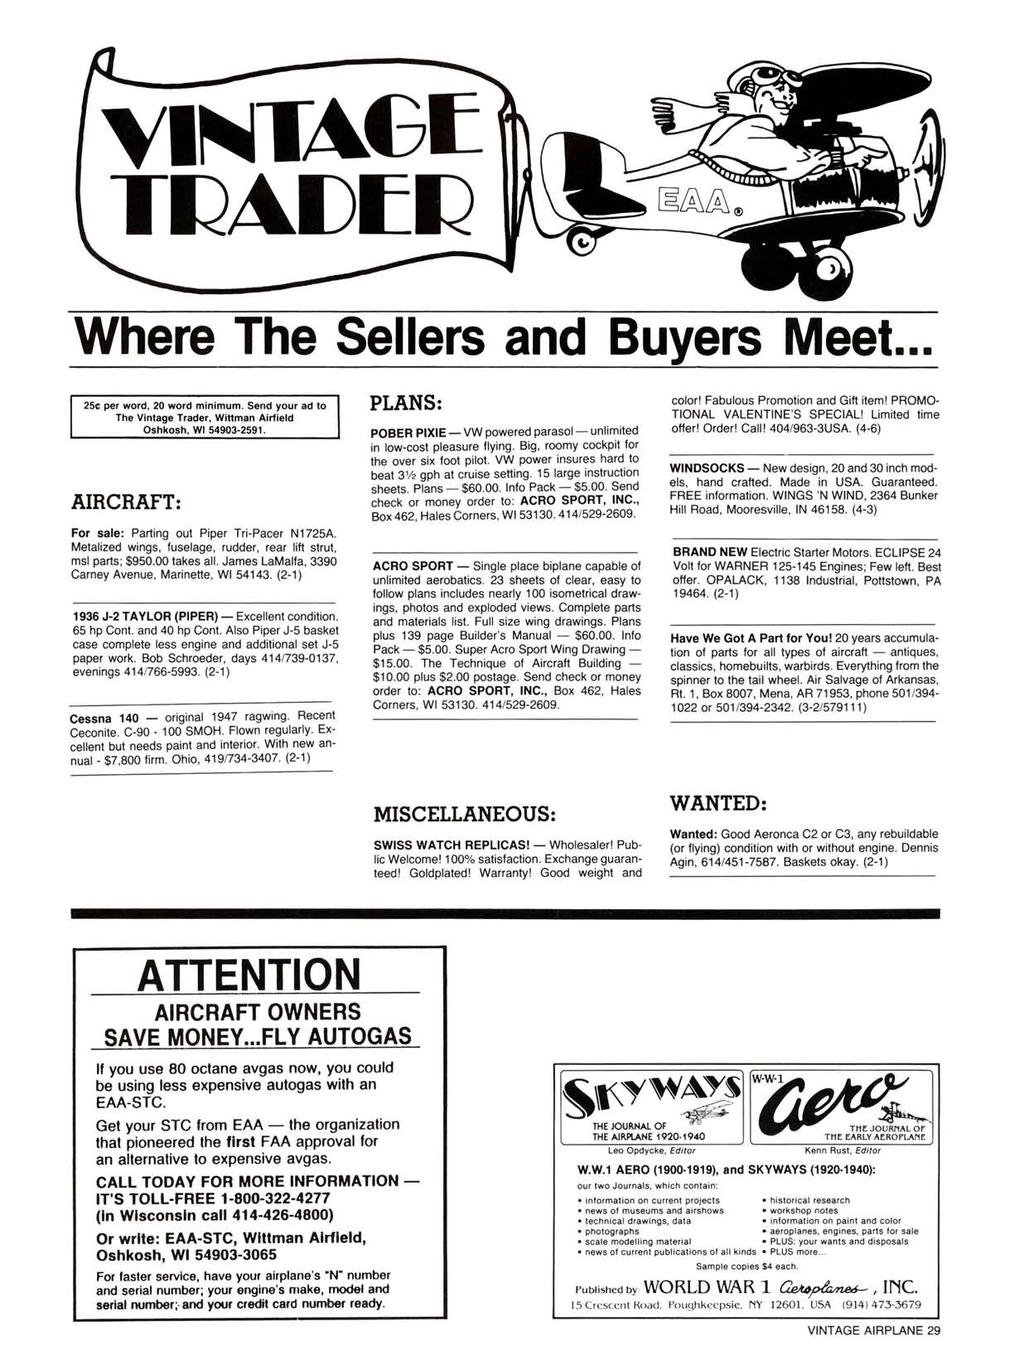 "Where The Sellers and Buyers Meet... 25e per word, 20 word minimum. Send your ad to The Vintage Trader, Wi""man Airfield Oshkosh, WI 54903-2591. AIRCRAFT: For sale: Parting out Piper Tri-Pacer N1725A."